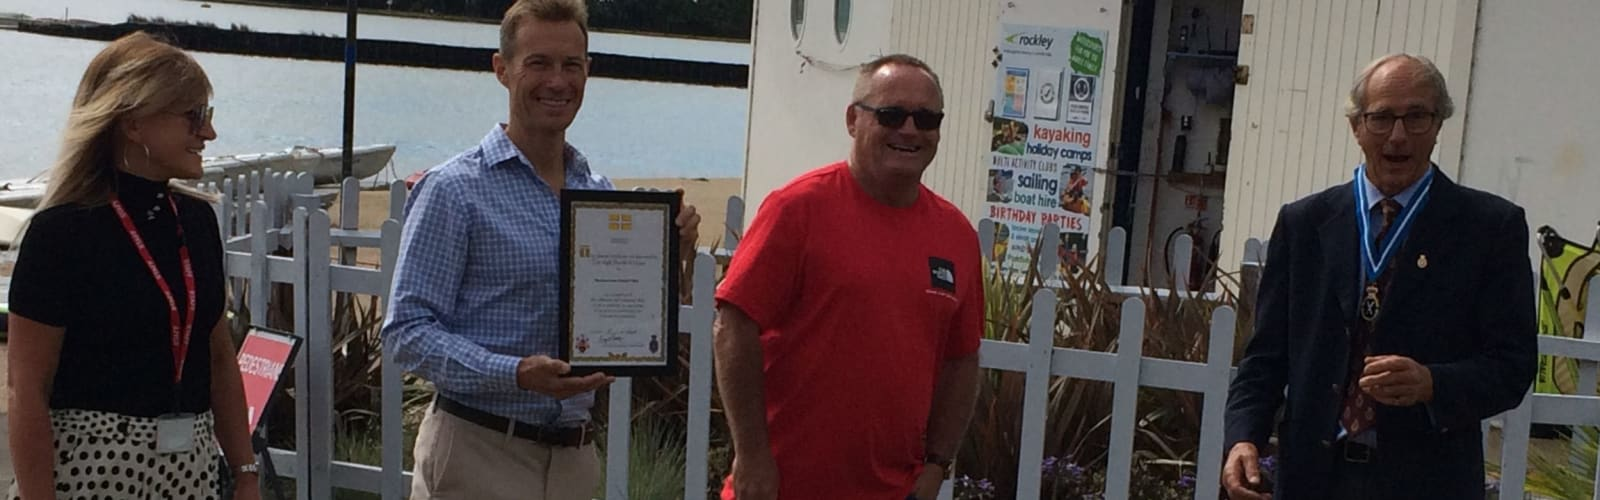 Footprints receives two awards from George Streatfield, High Sheriff of Dorset